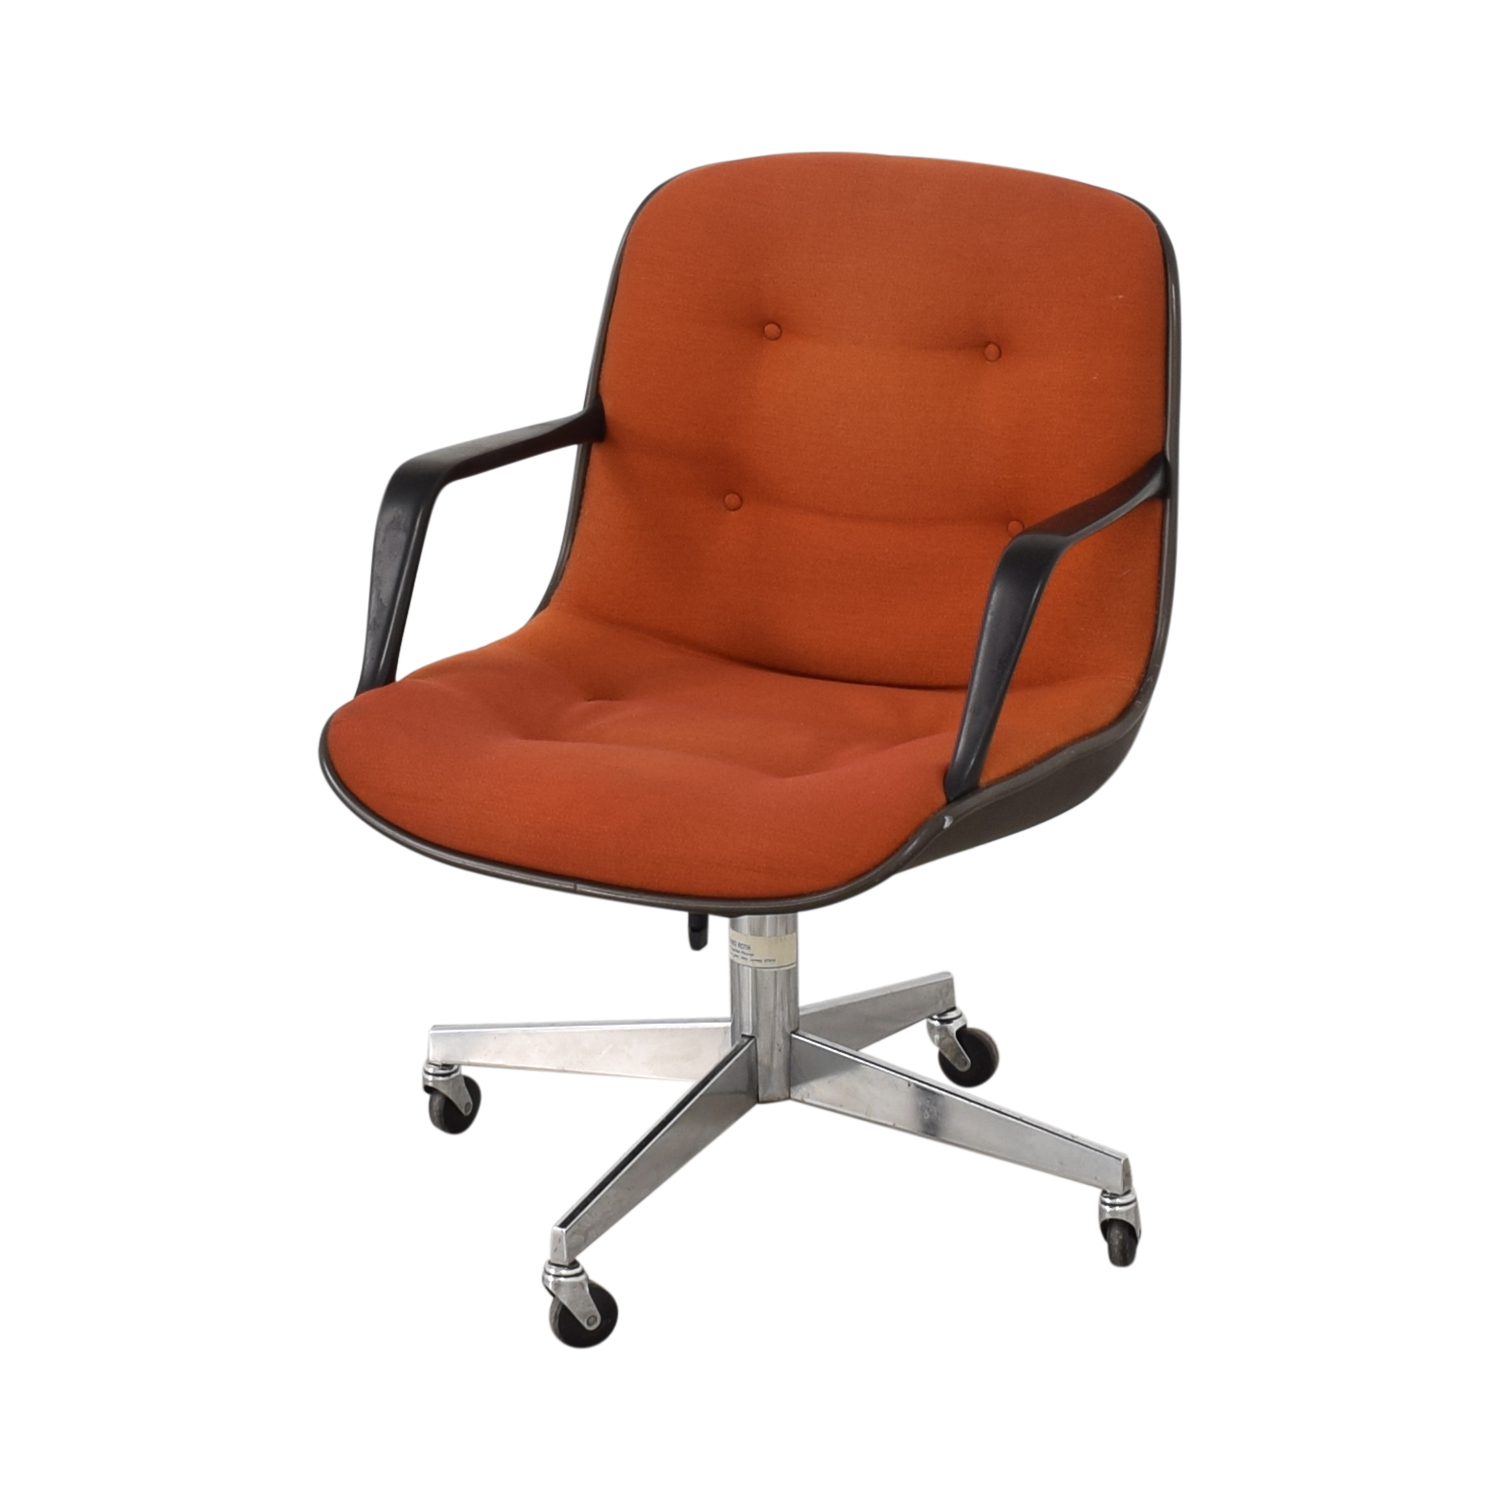 Steelcase Steelcase Mid Century Modern Office Chair Chairs